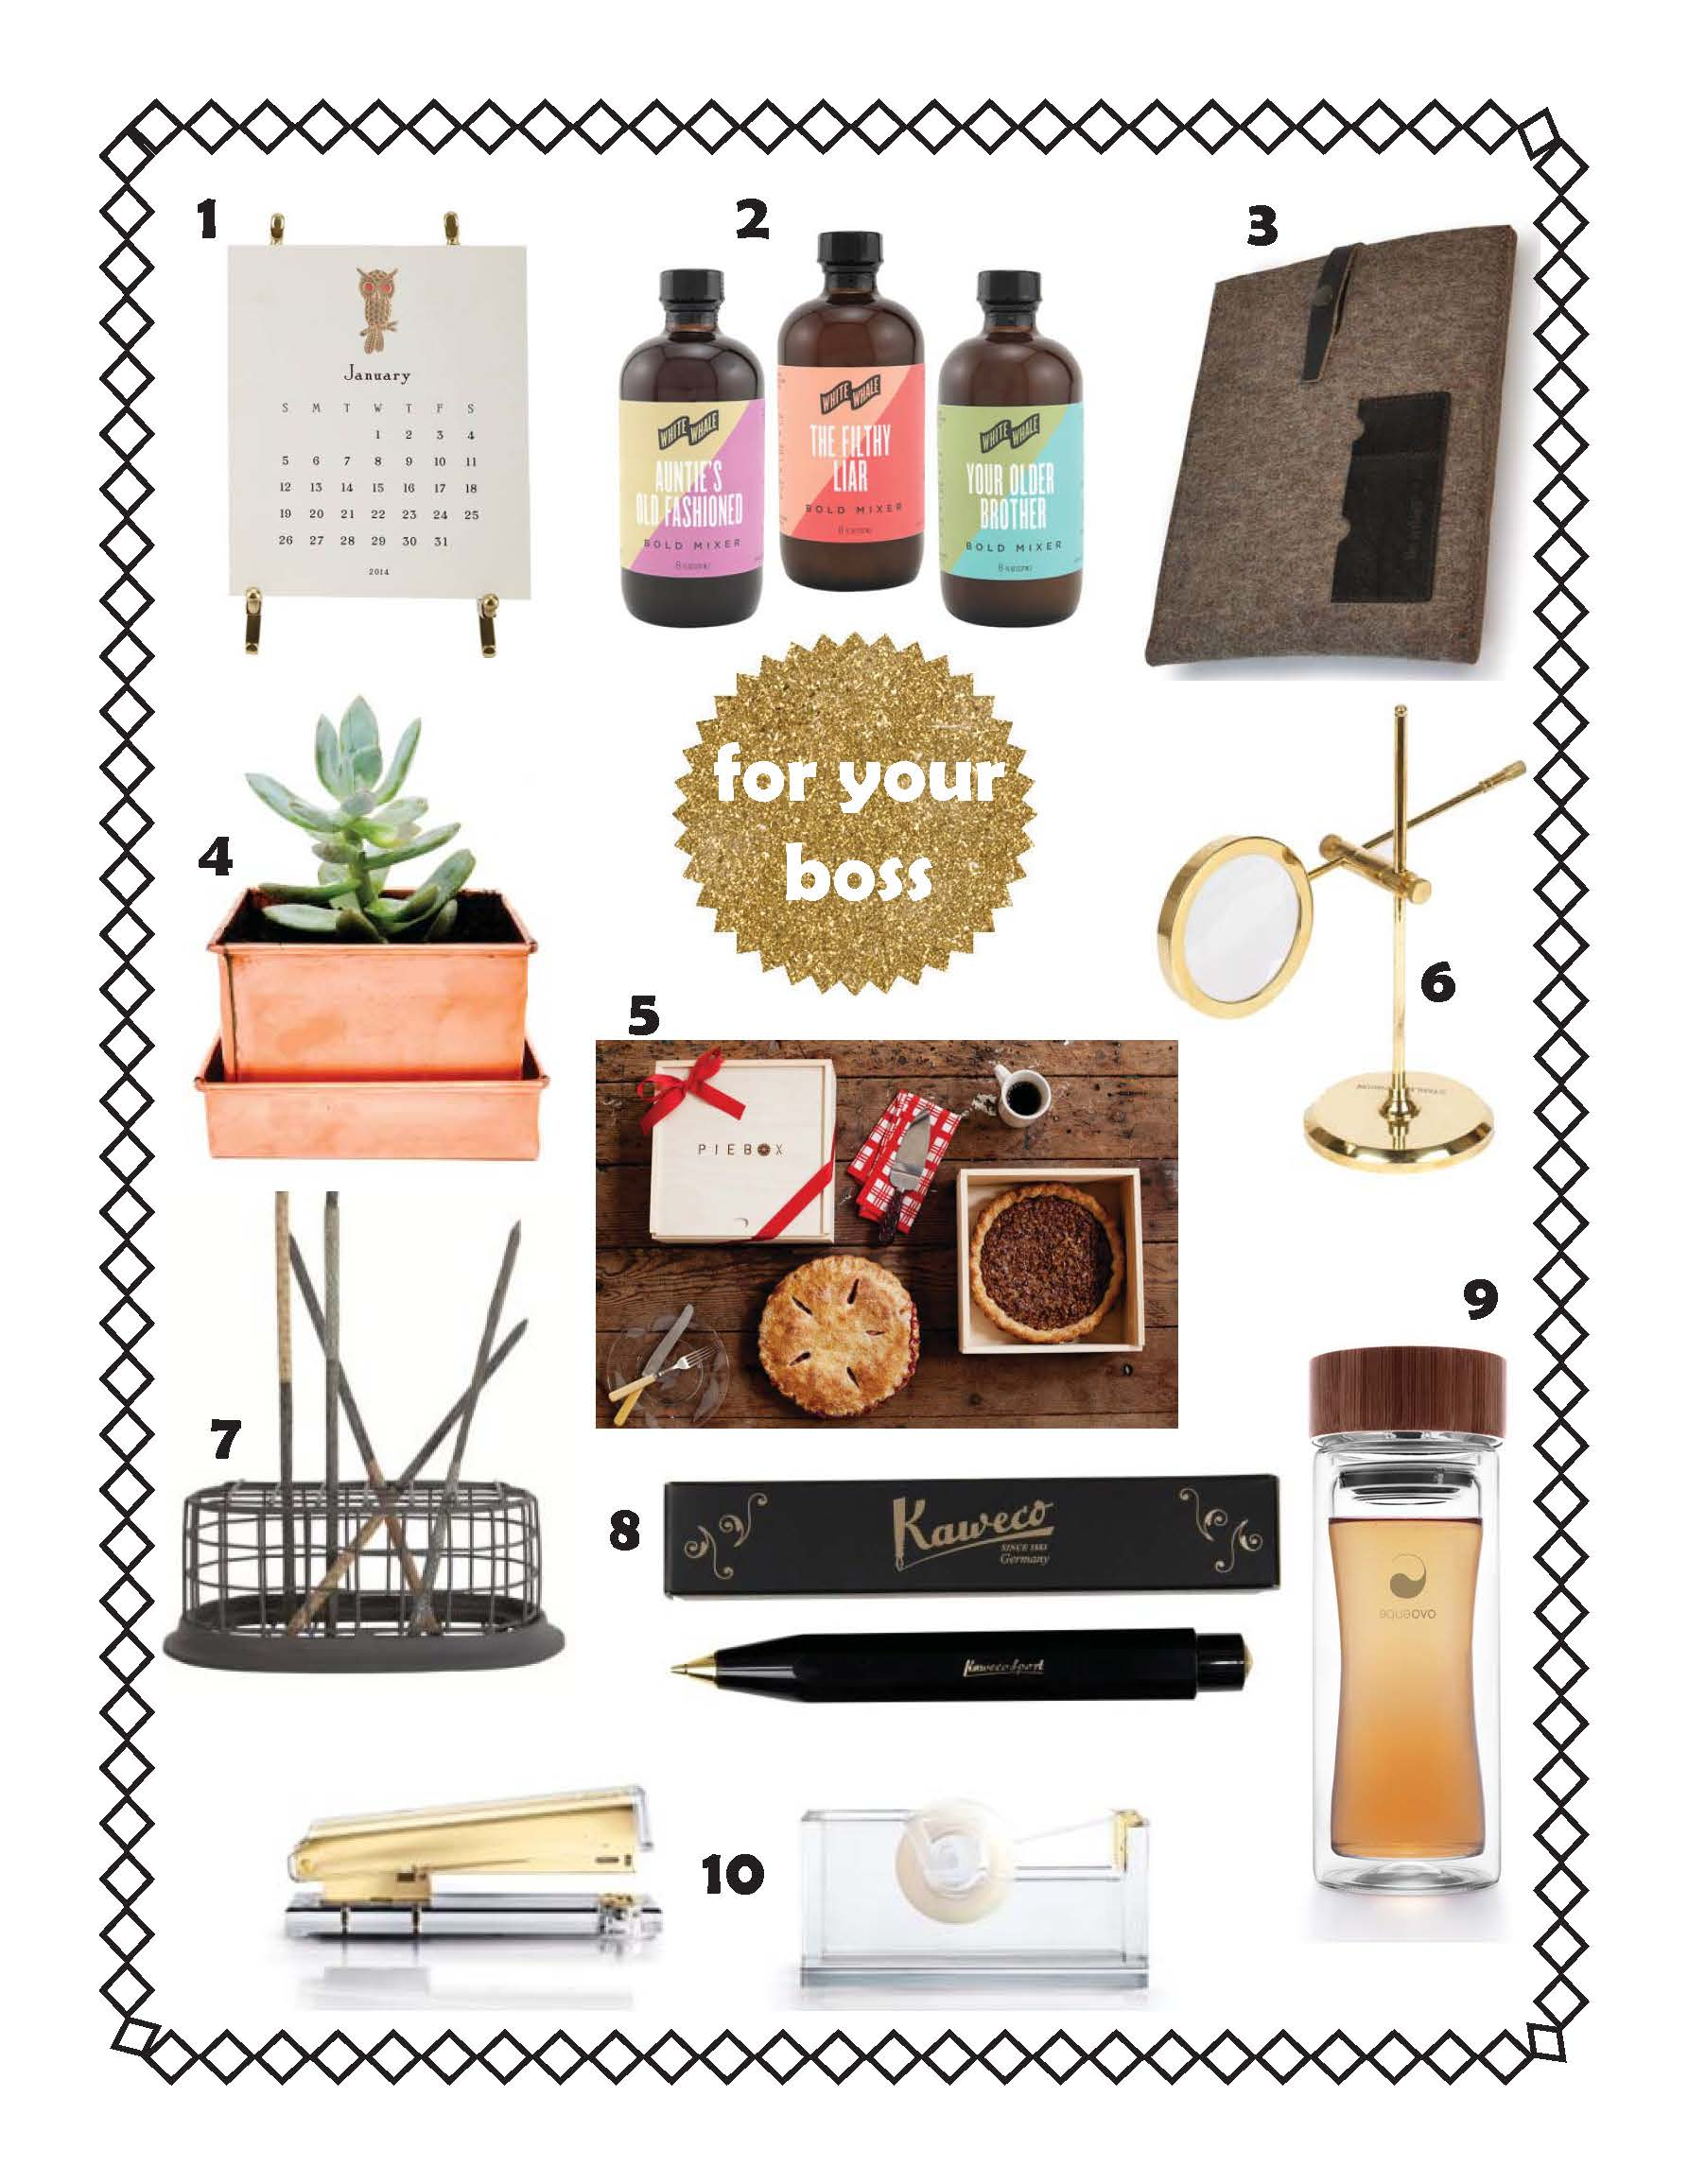 holiday gift guide: for your boss & for the art lover | kishani perera